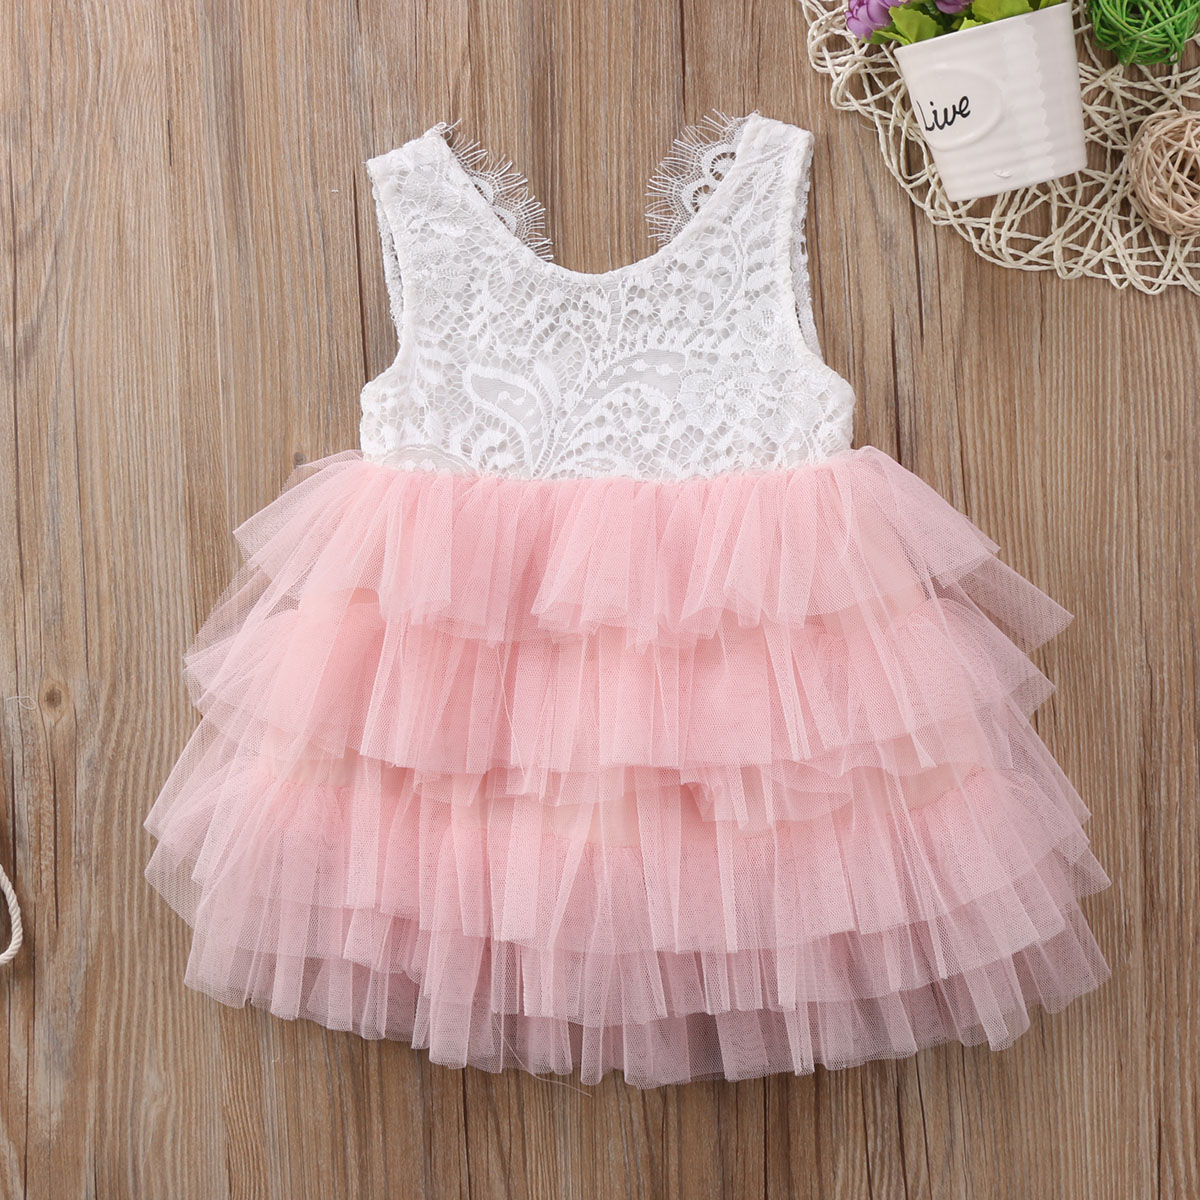 Summer Kids Baby Girl Lace Tutu Dress Sleeveless Vest Princess Party Pageant Dresses Tulle Backless Ball Gown Dress Clothes newborn girls dresses 2017 new summer sleeveless baby girl lace dress ball gown kids dress princess girl children clothes 3ds092